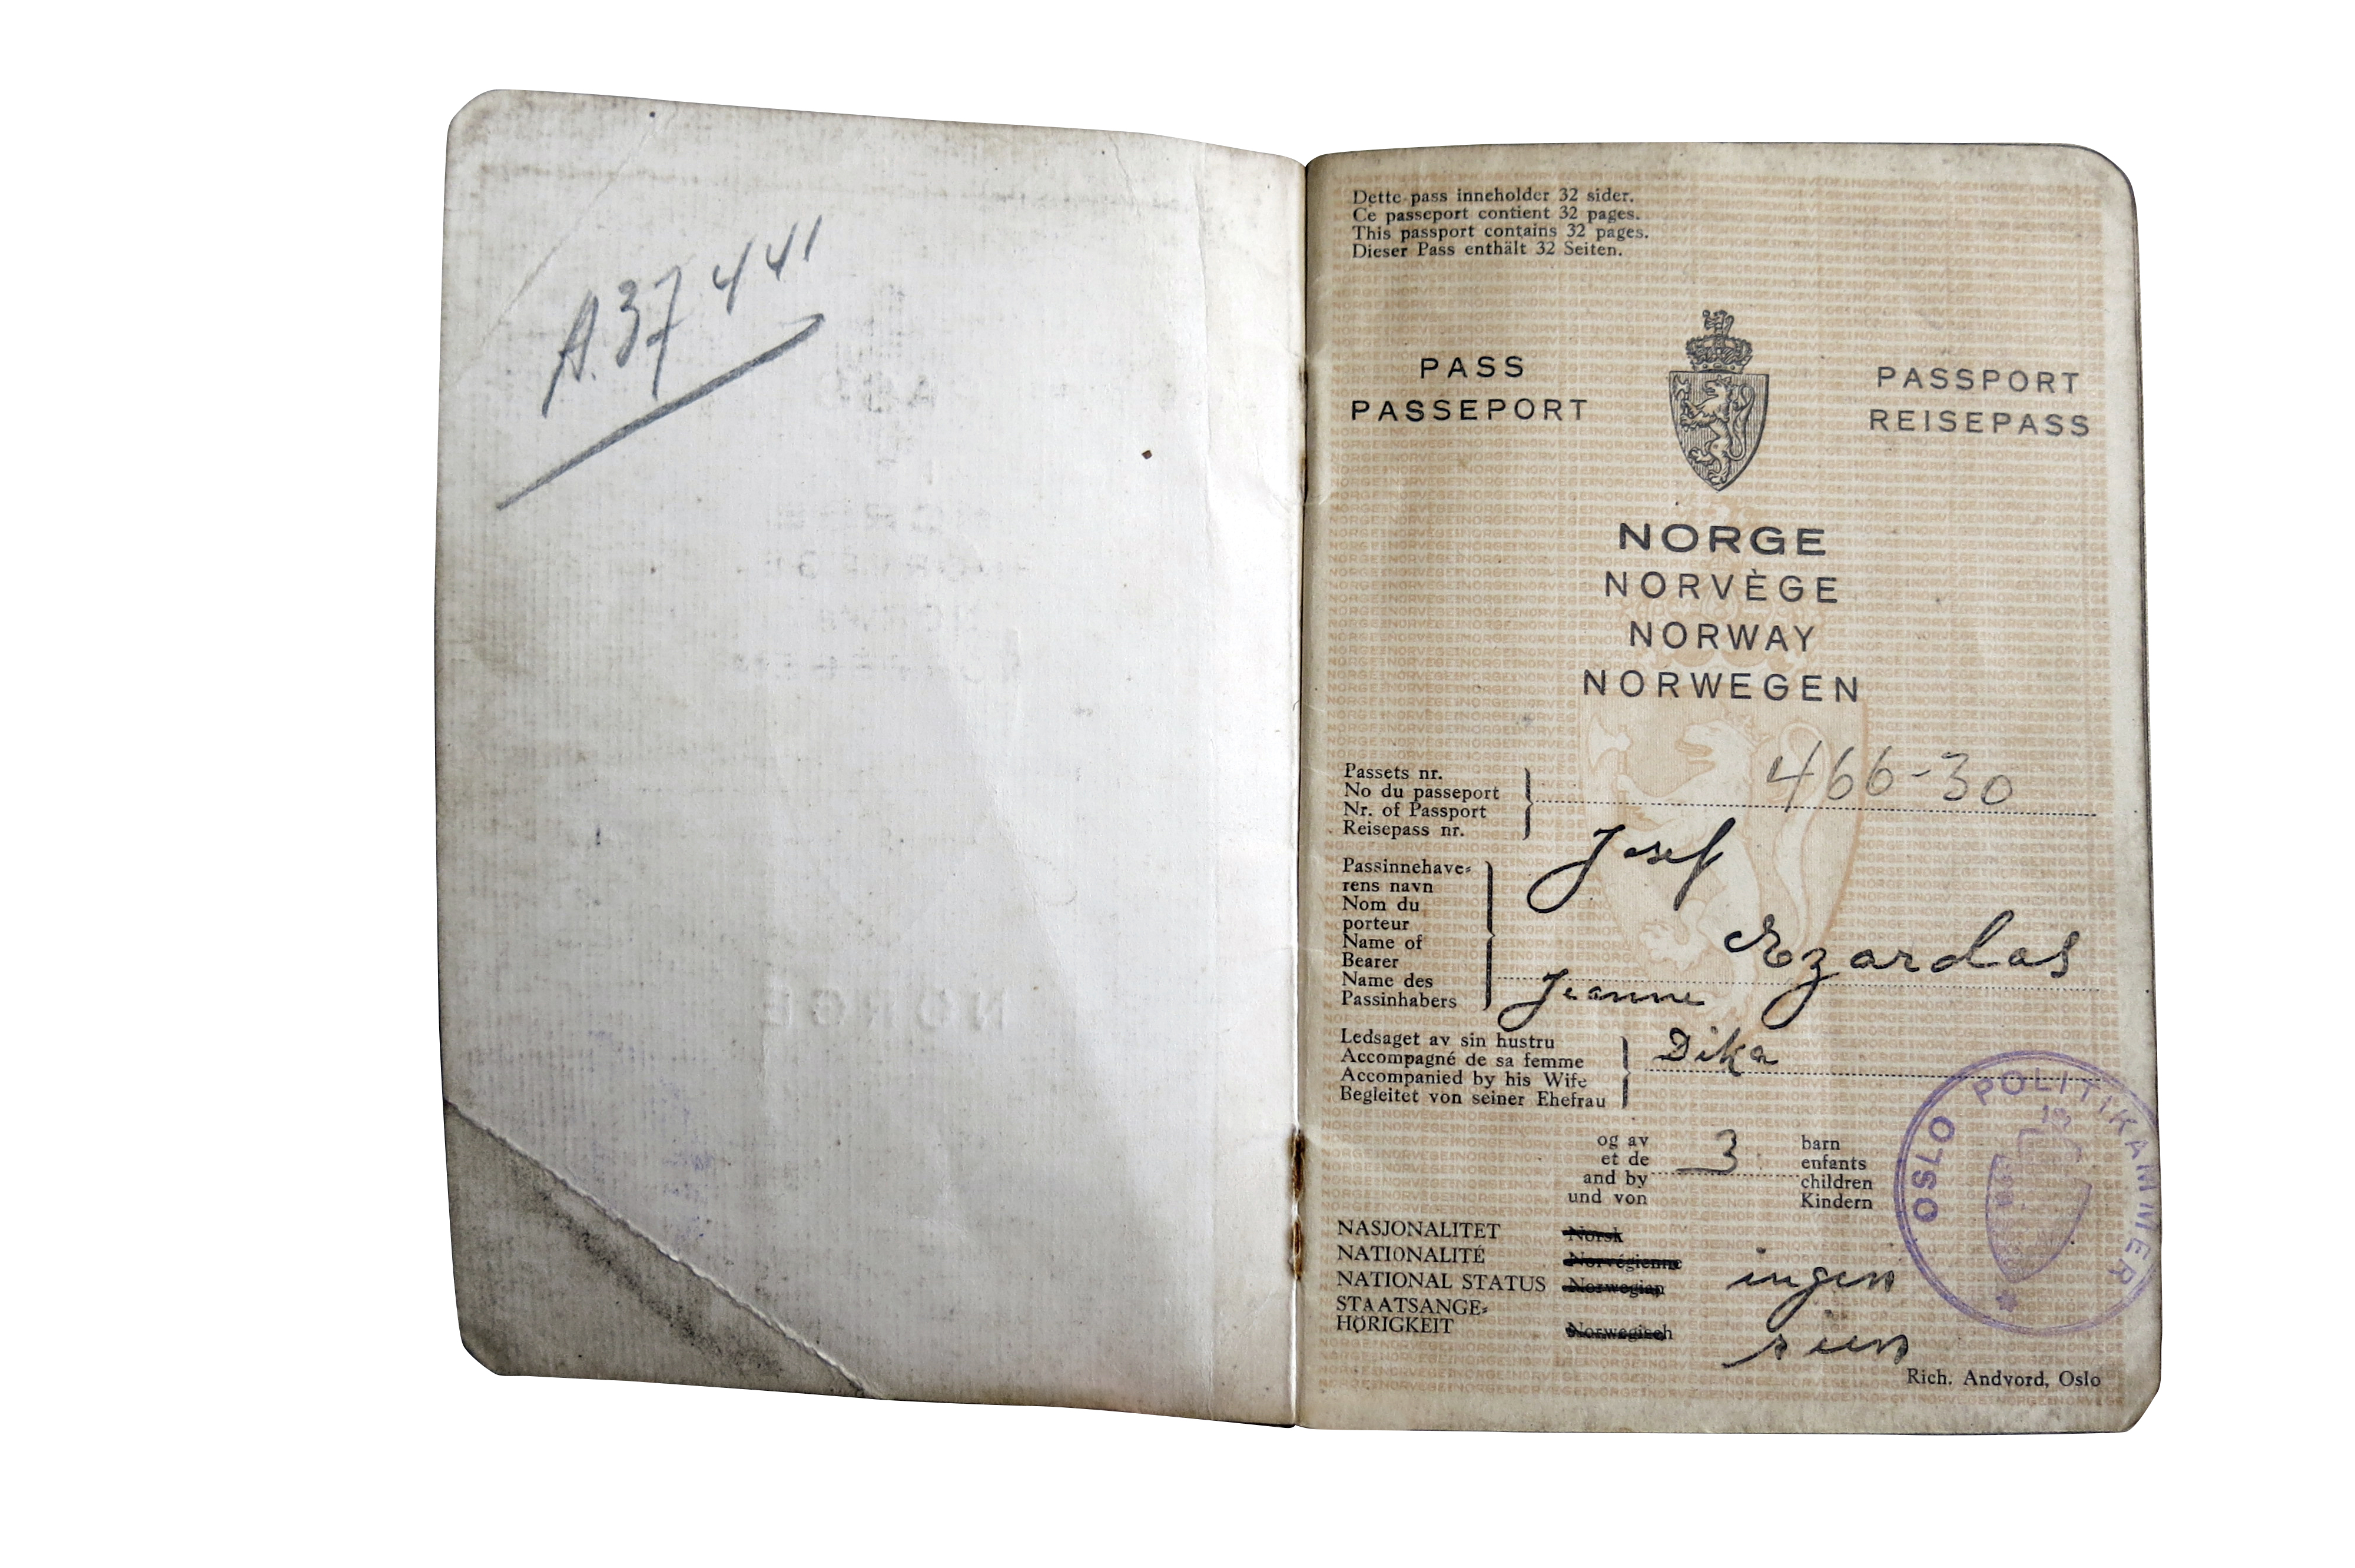 Czardas Josef S Passport Nationality None The Norwegian Center For Holocaust And Minority Studies